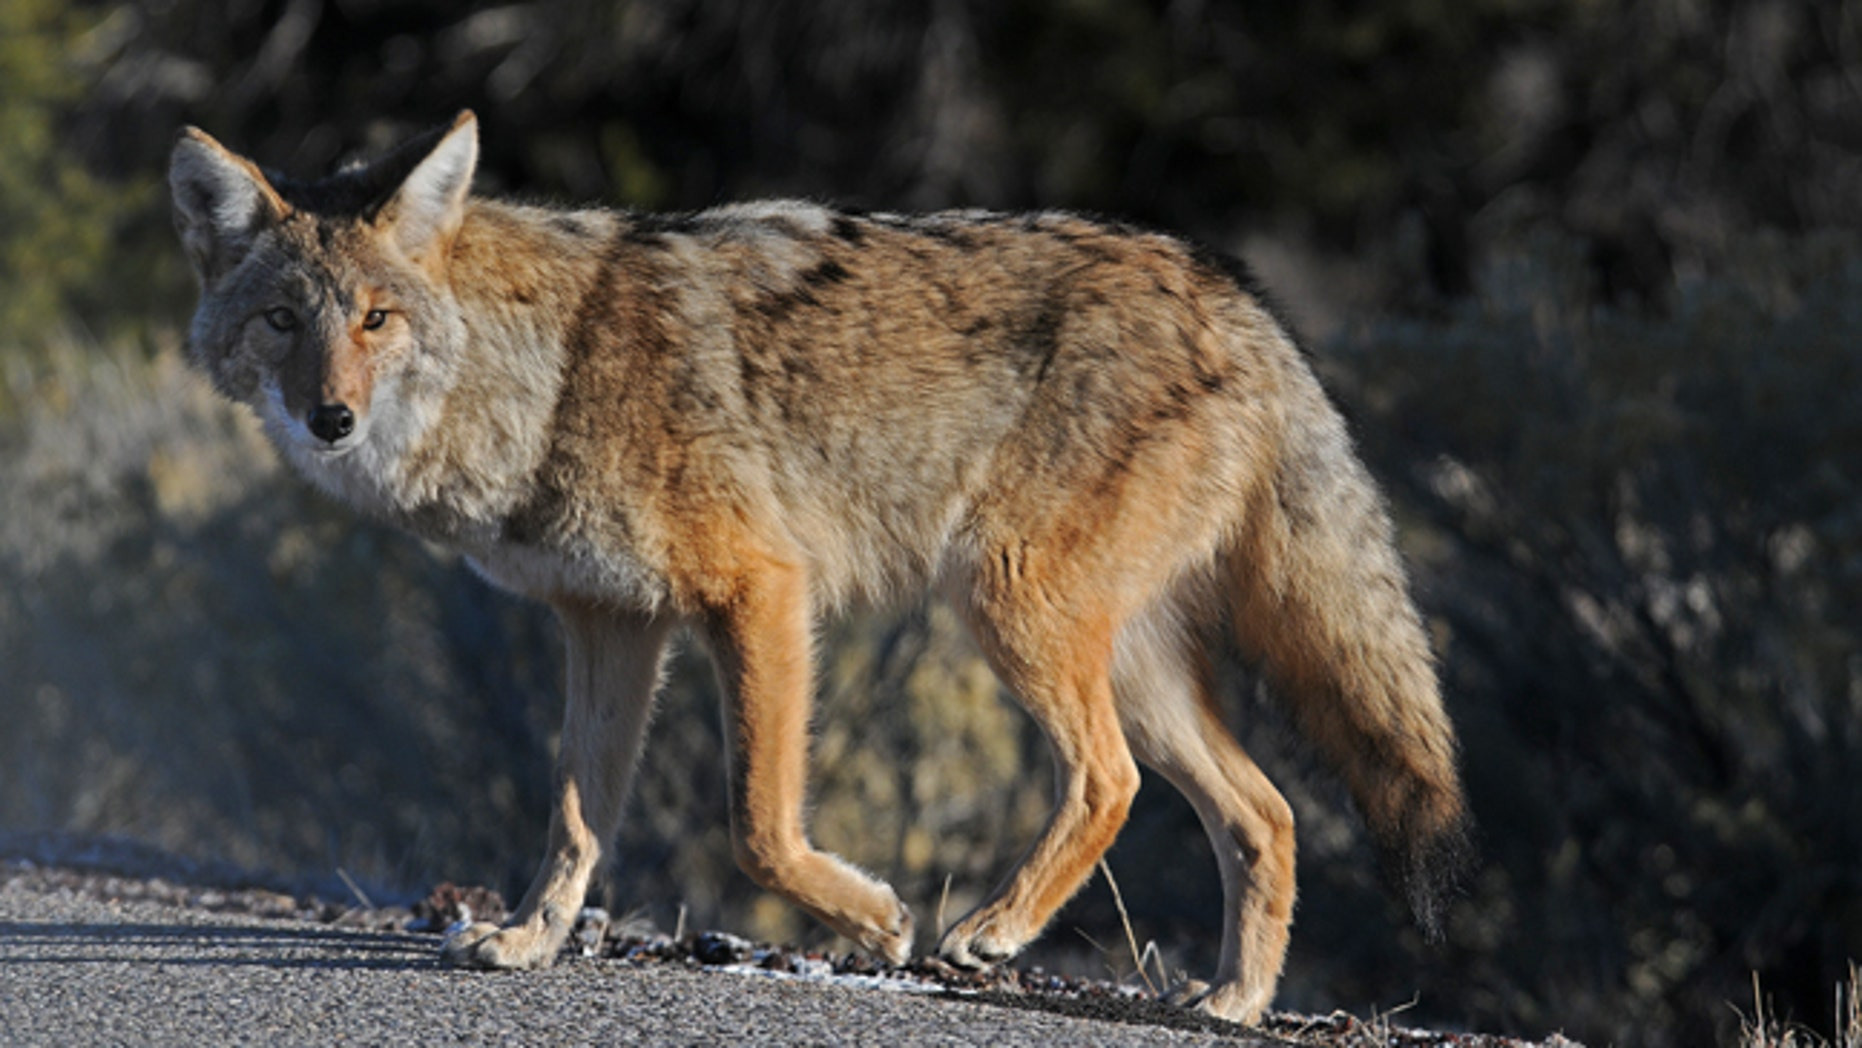 FILE: A Florida man uses a coffee cup to fend off an aggressive coyote.